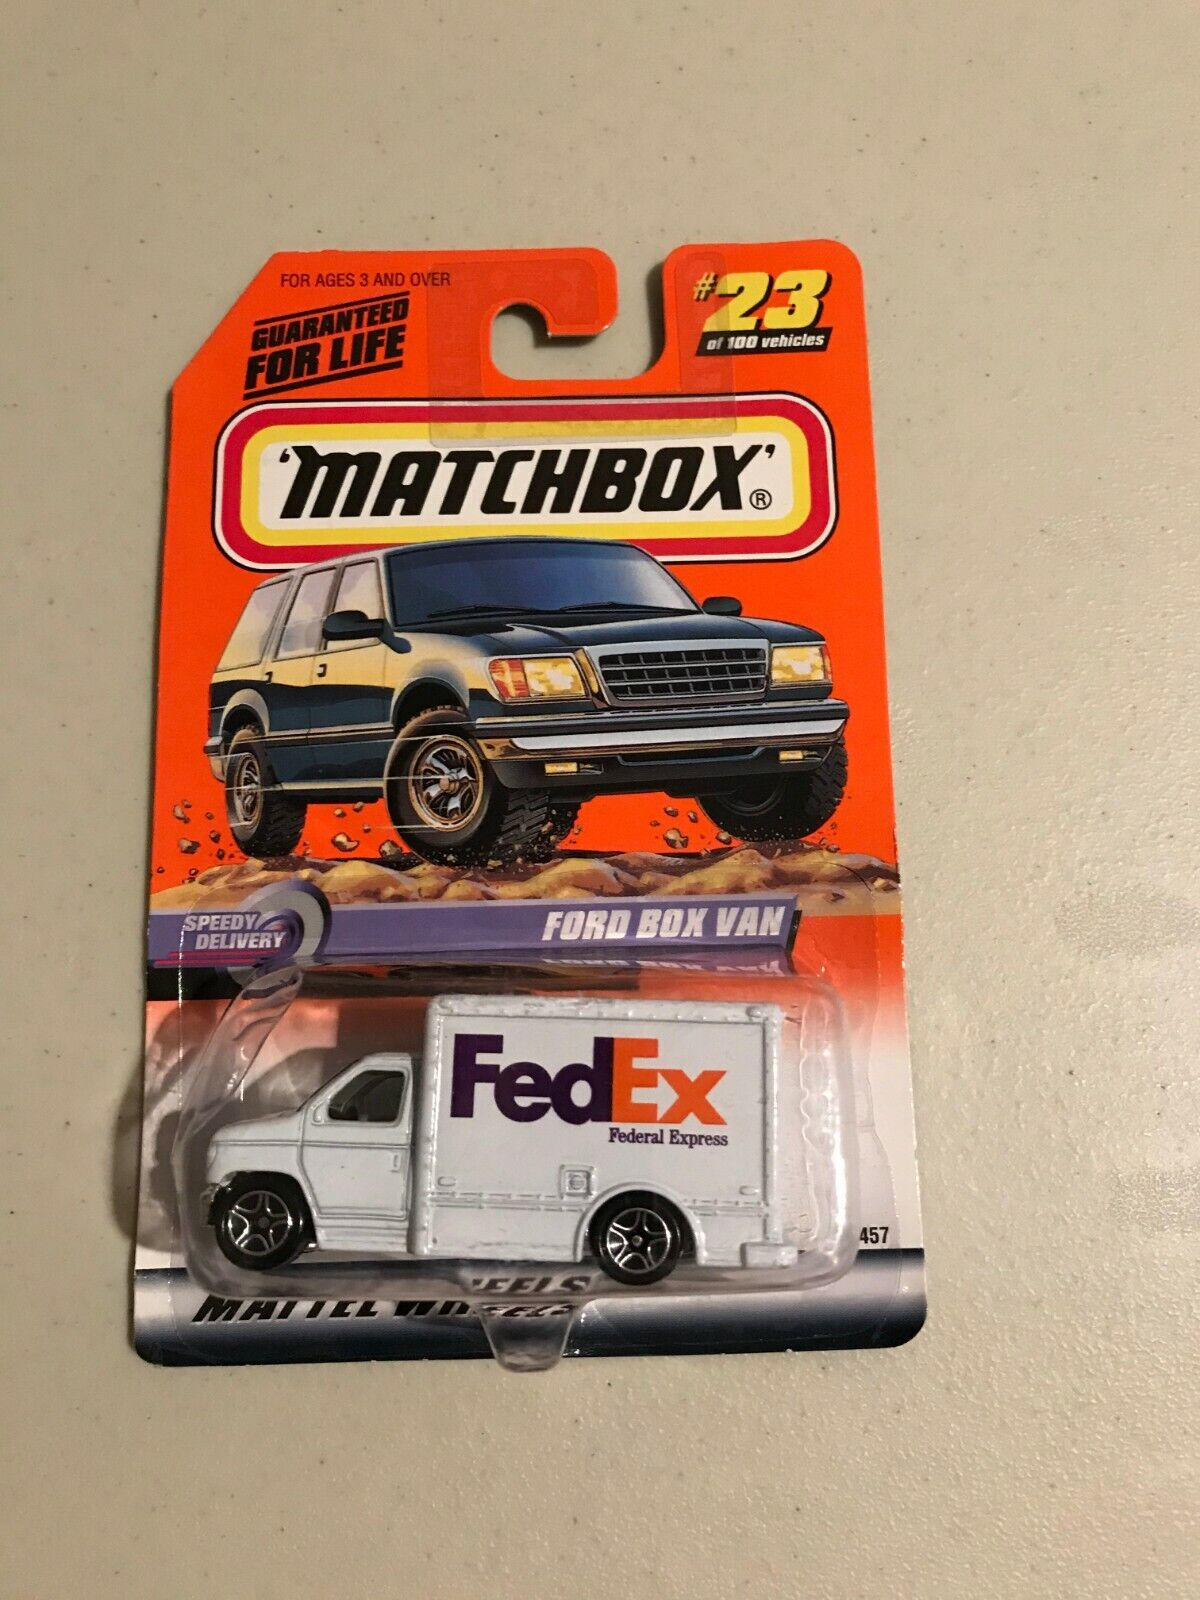 FedEx Delivery Truck Matchbox 23 New On Card Ford Box Van Speedy Delivery 1999 - $7.00